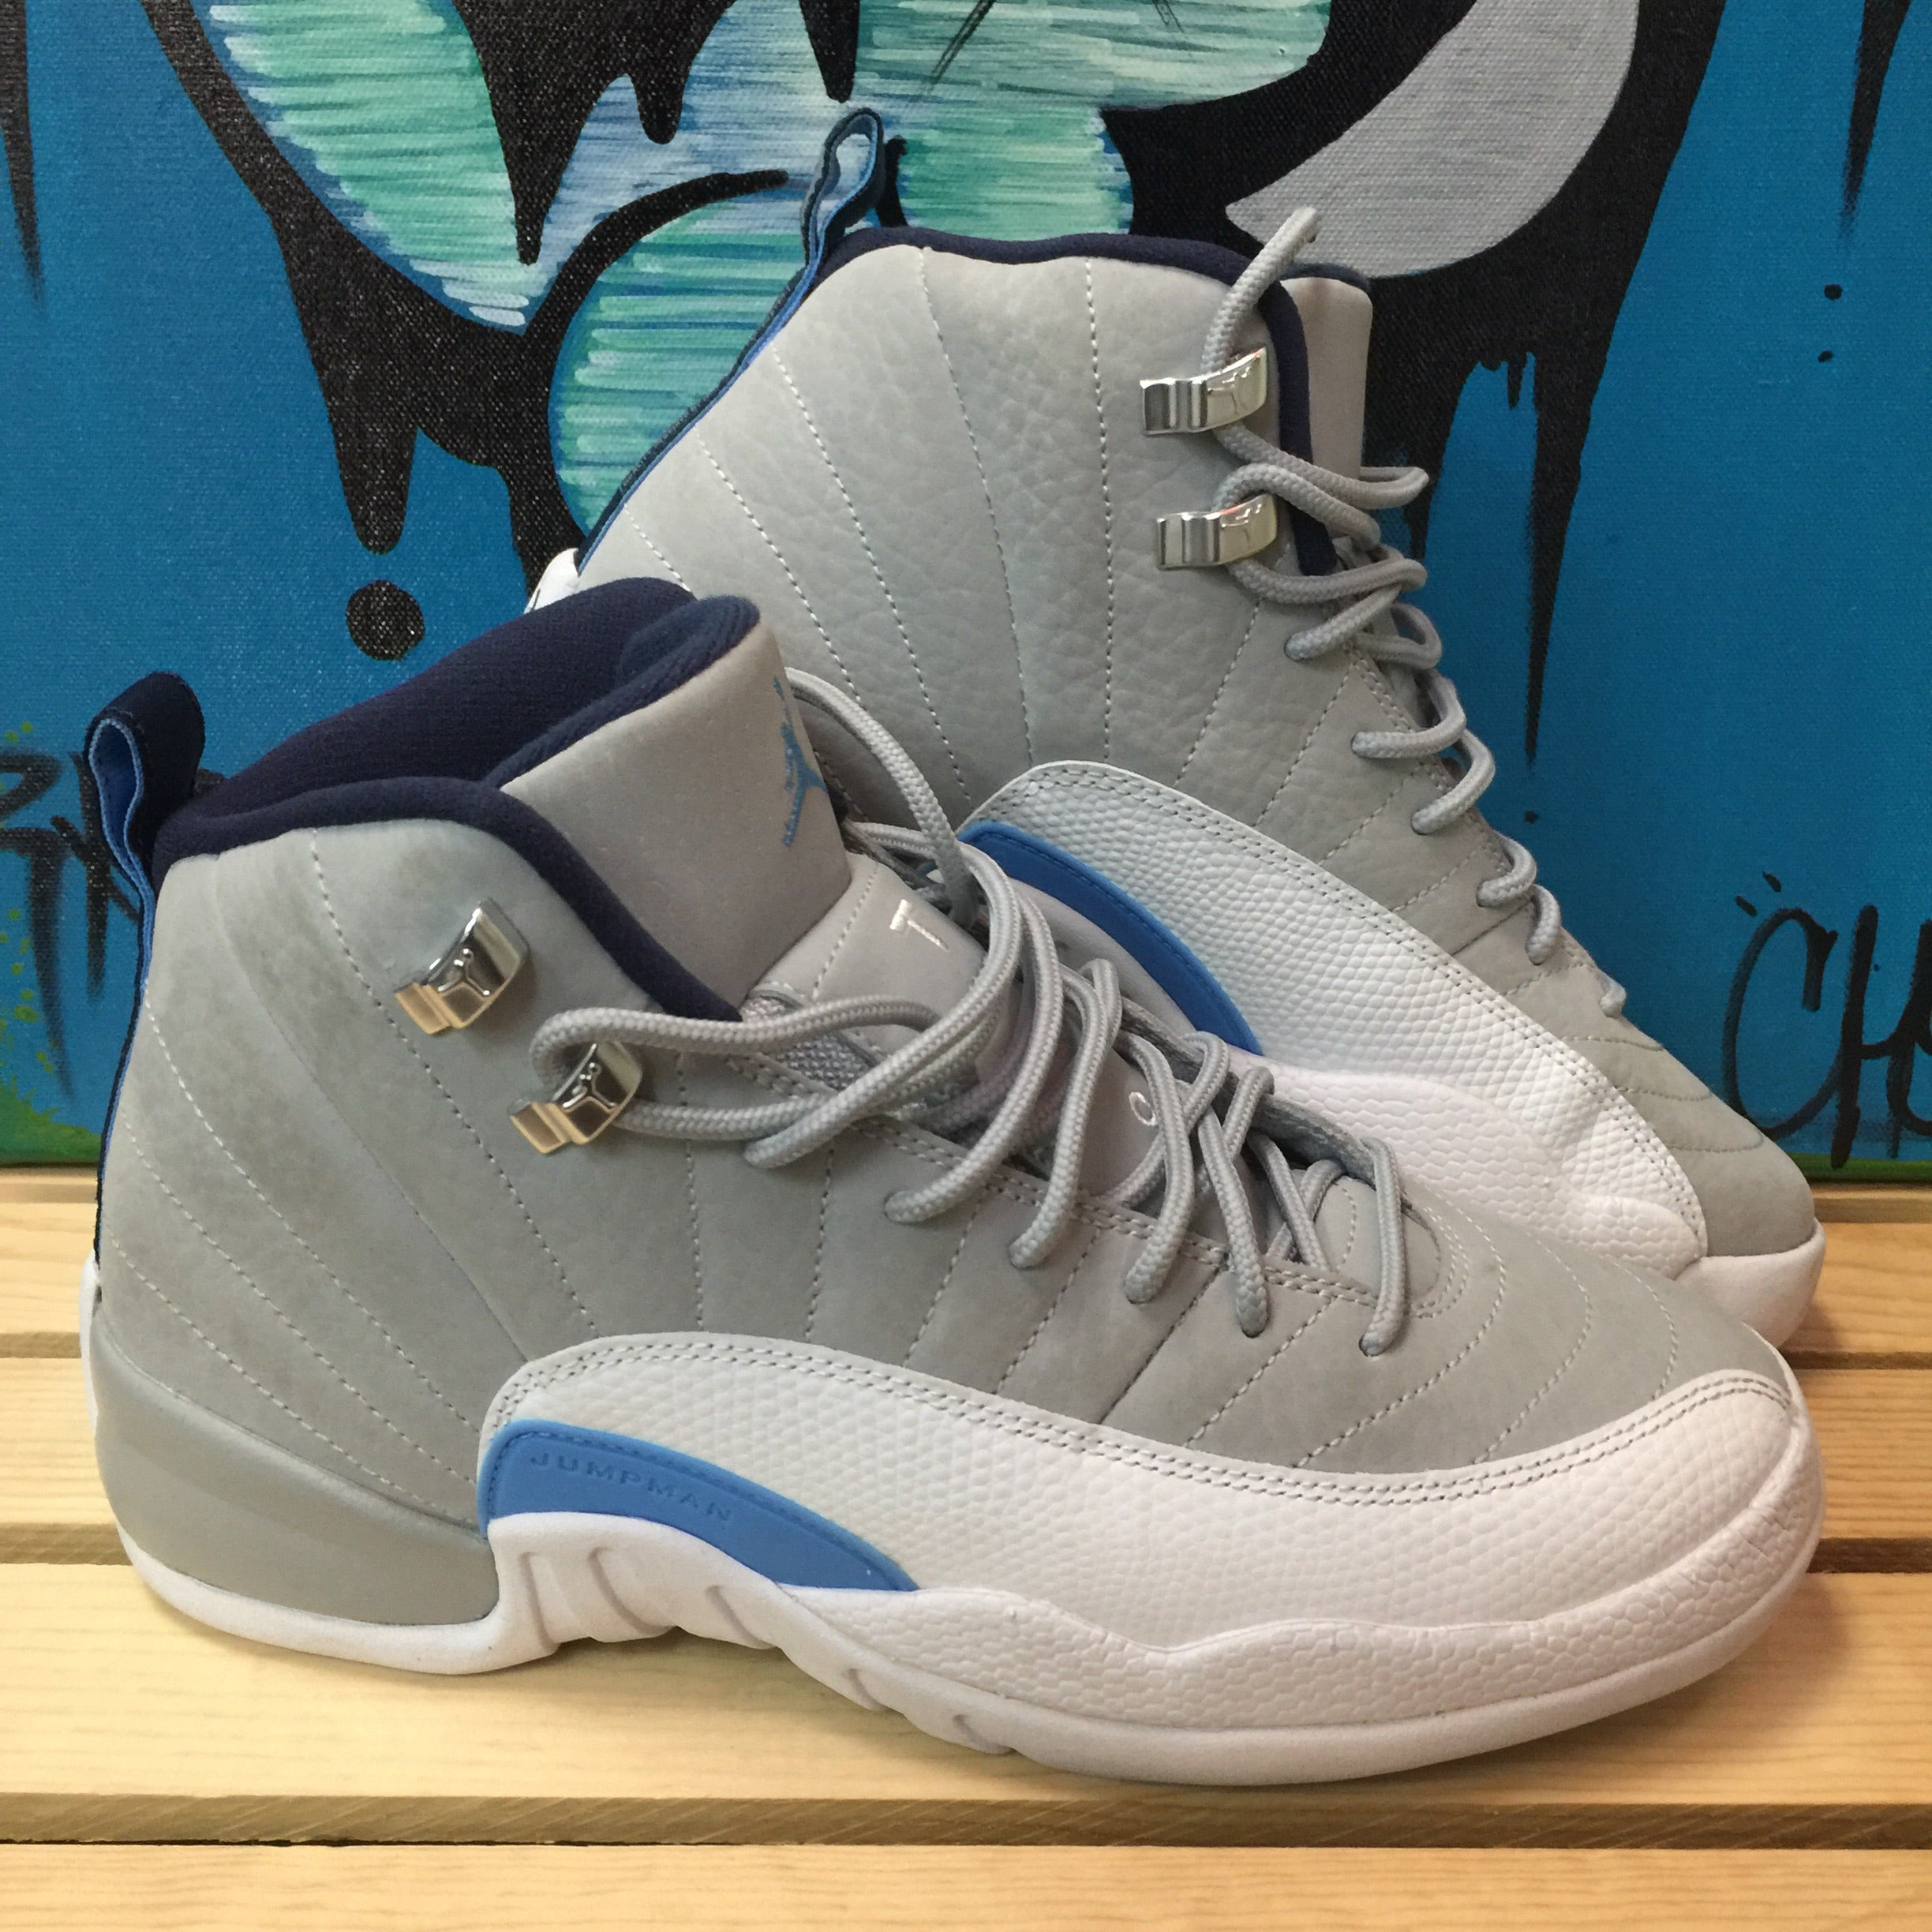 new product 5e756 0a1be Air Jordan Retro 12 University Blue Grey - Size 6.5Y